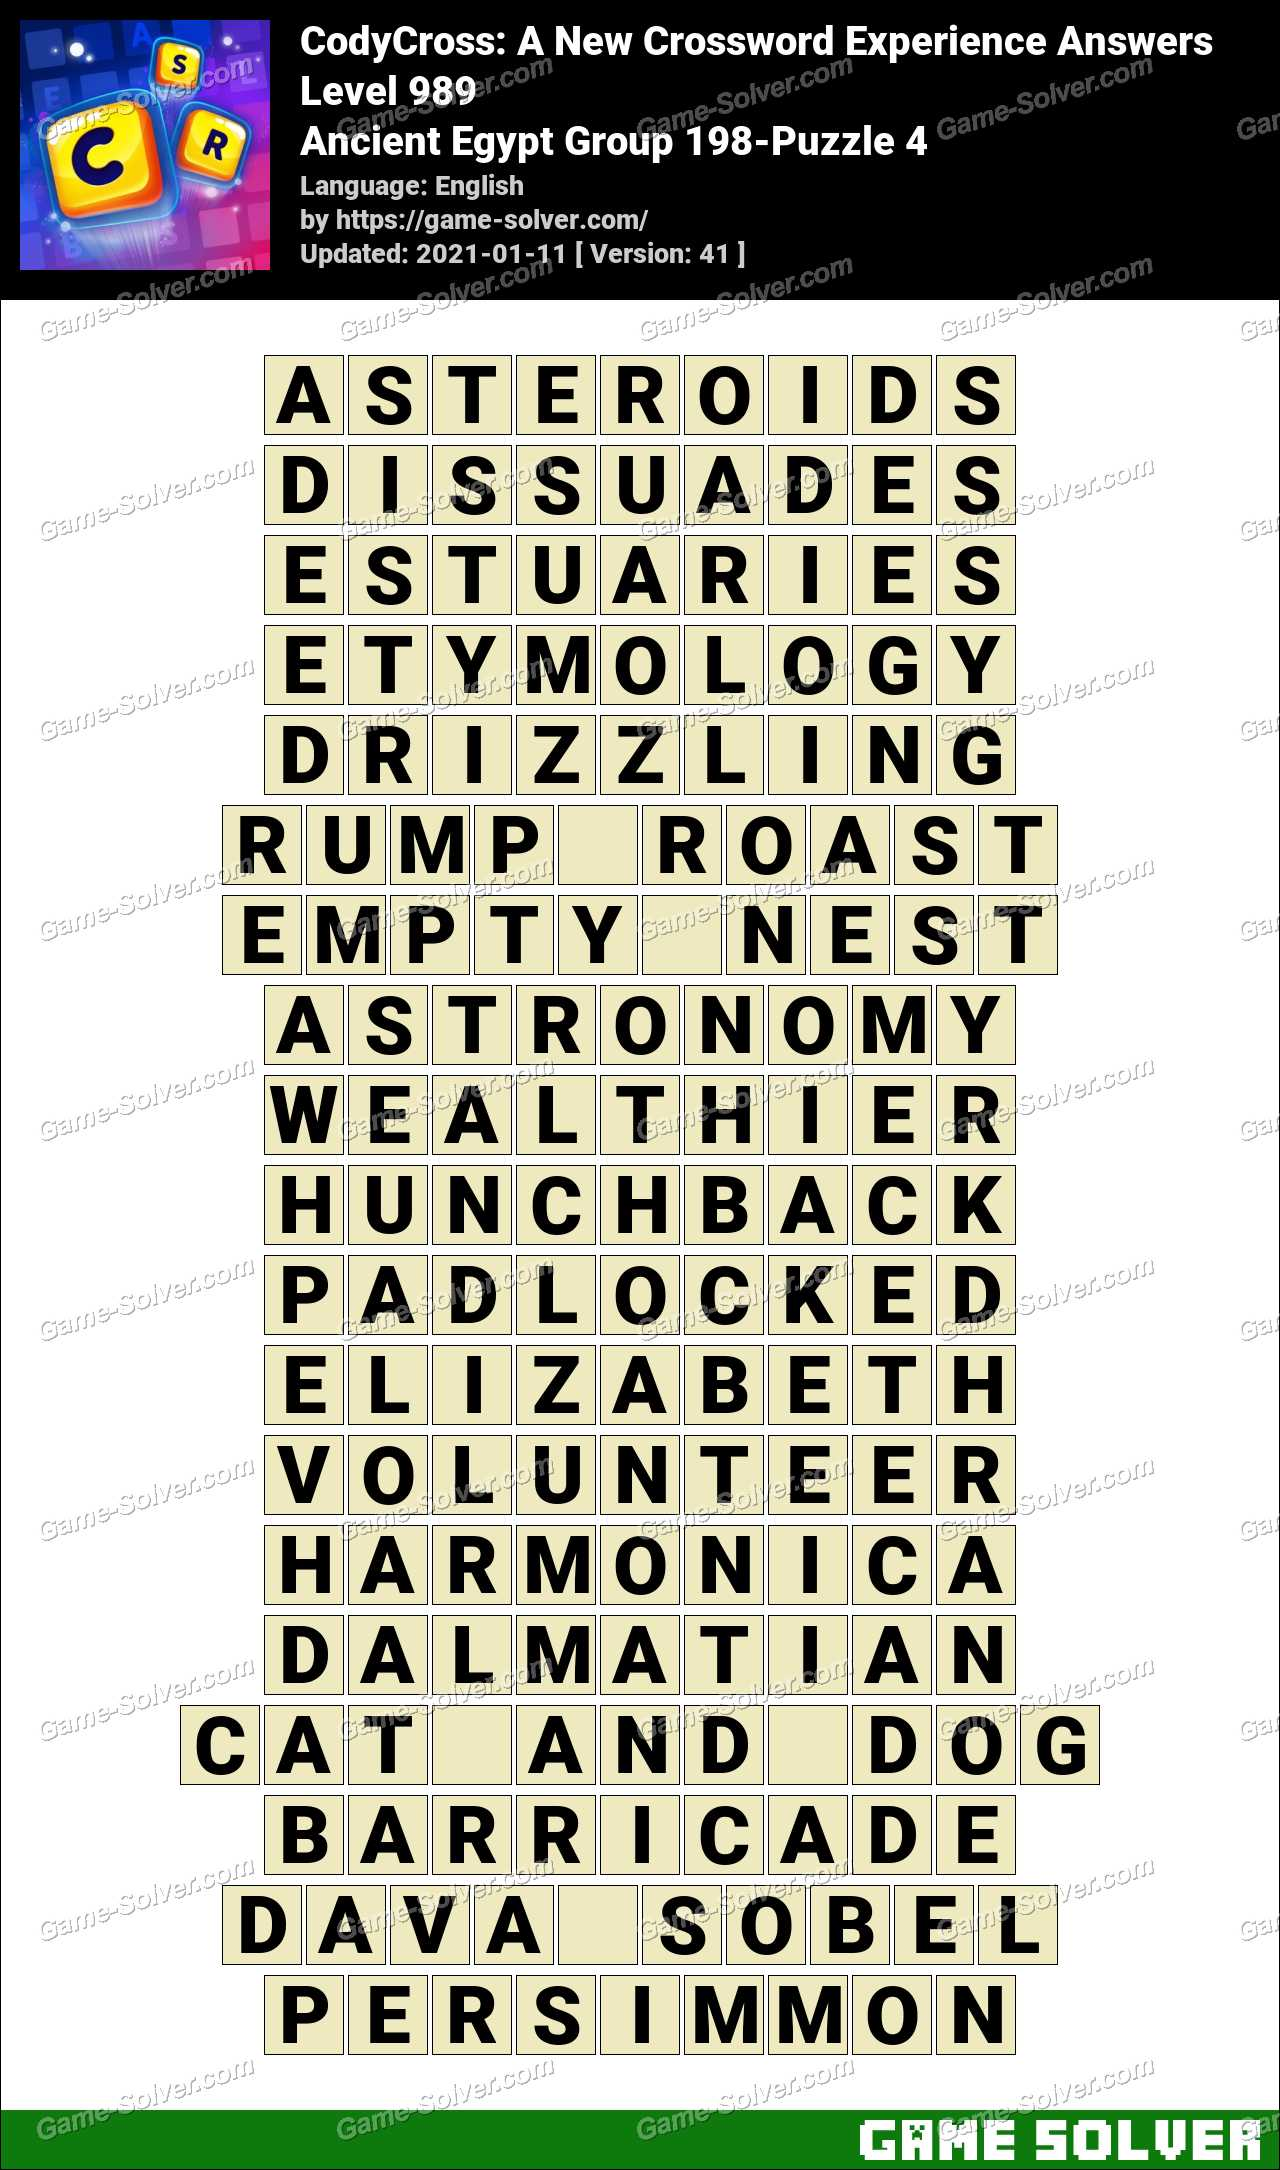 Codycross Ancient Egypt Group 198 Puzzle 4 Answers Game Solver